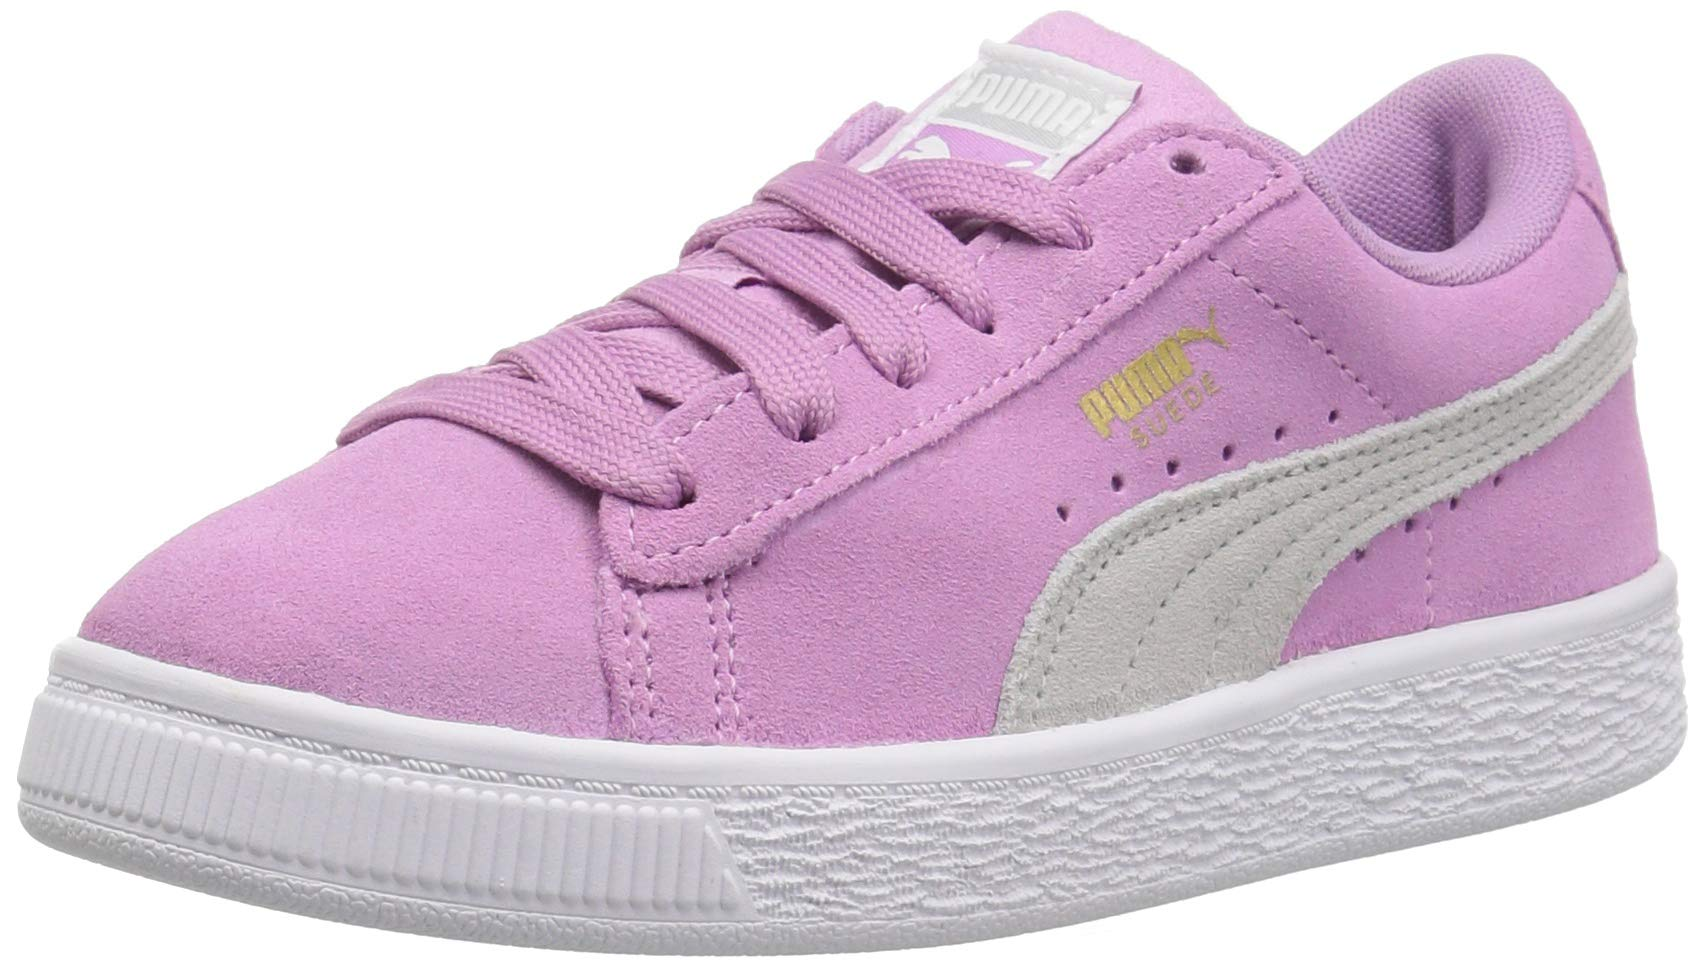 PUMA Unisex Suede Classic Kids Sneaker, Orchid-Gray Violet Team Gold, 2 M US Little